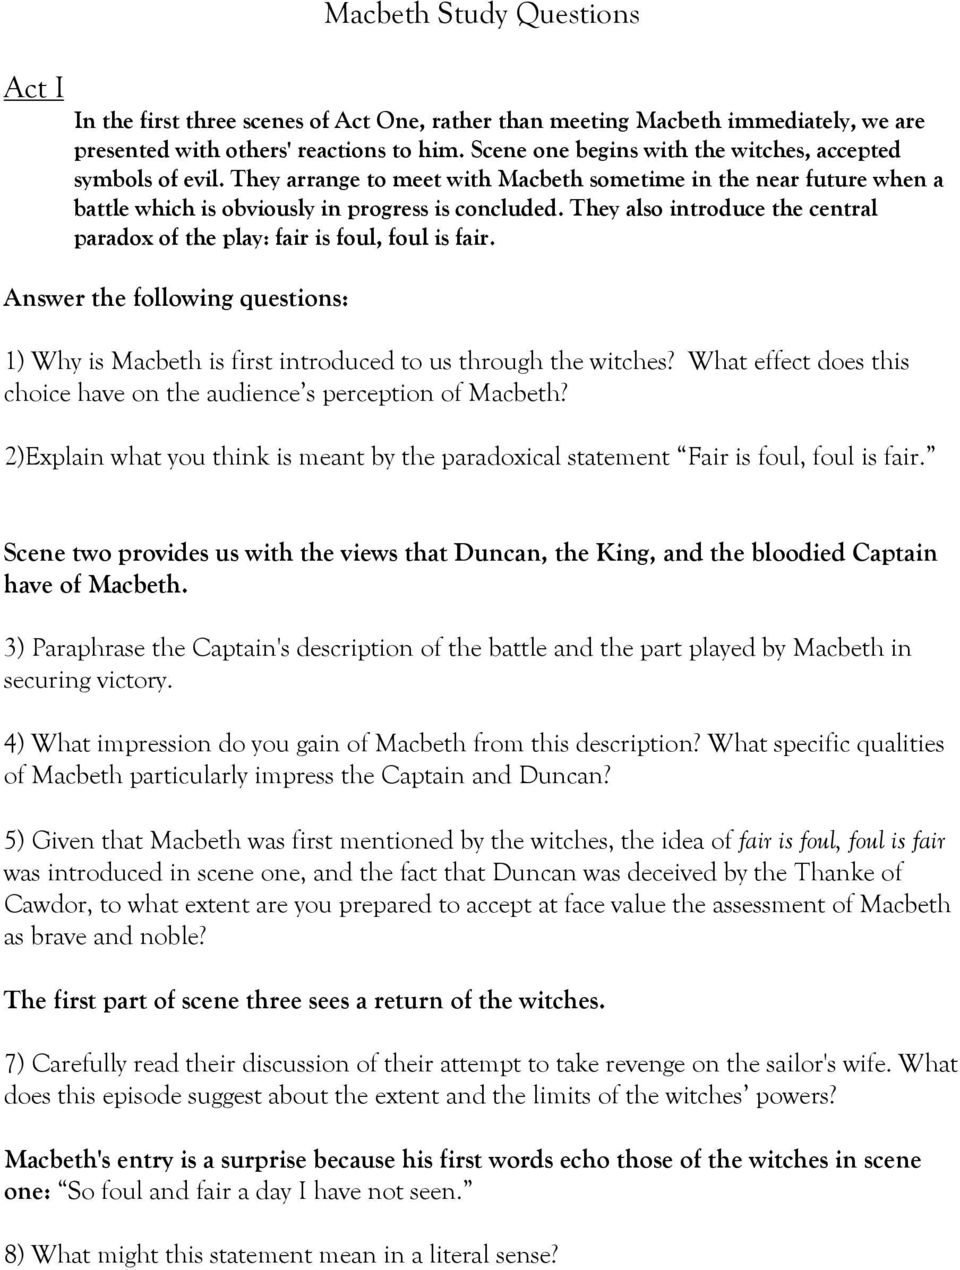 macbeth study questions pdf they also introduce the central paradox of the play fair is foul foul is